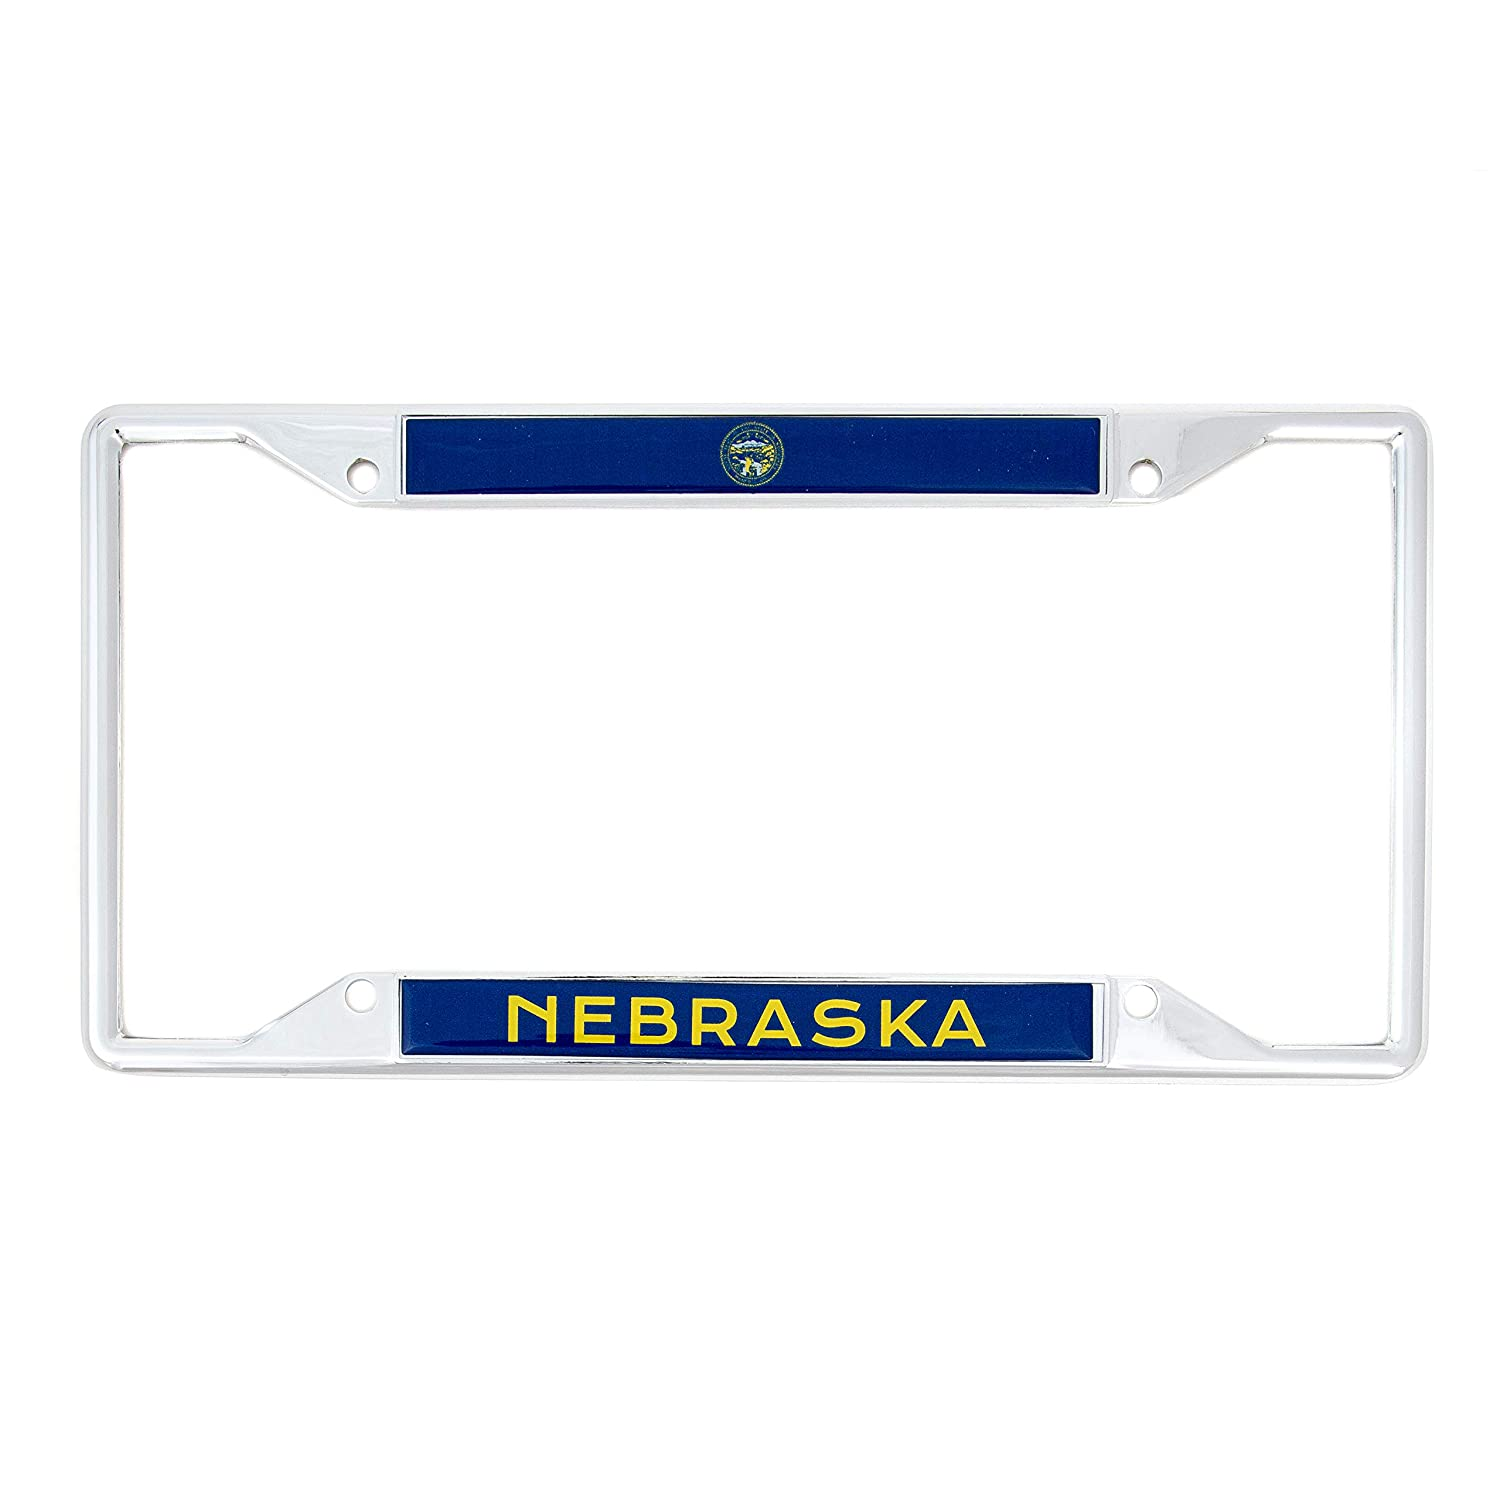 Desert Cactus State of Nebraska Flag License Plate Frame for Front Back of Car Vehicle Truck